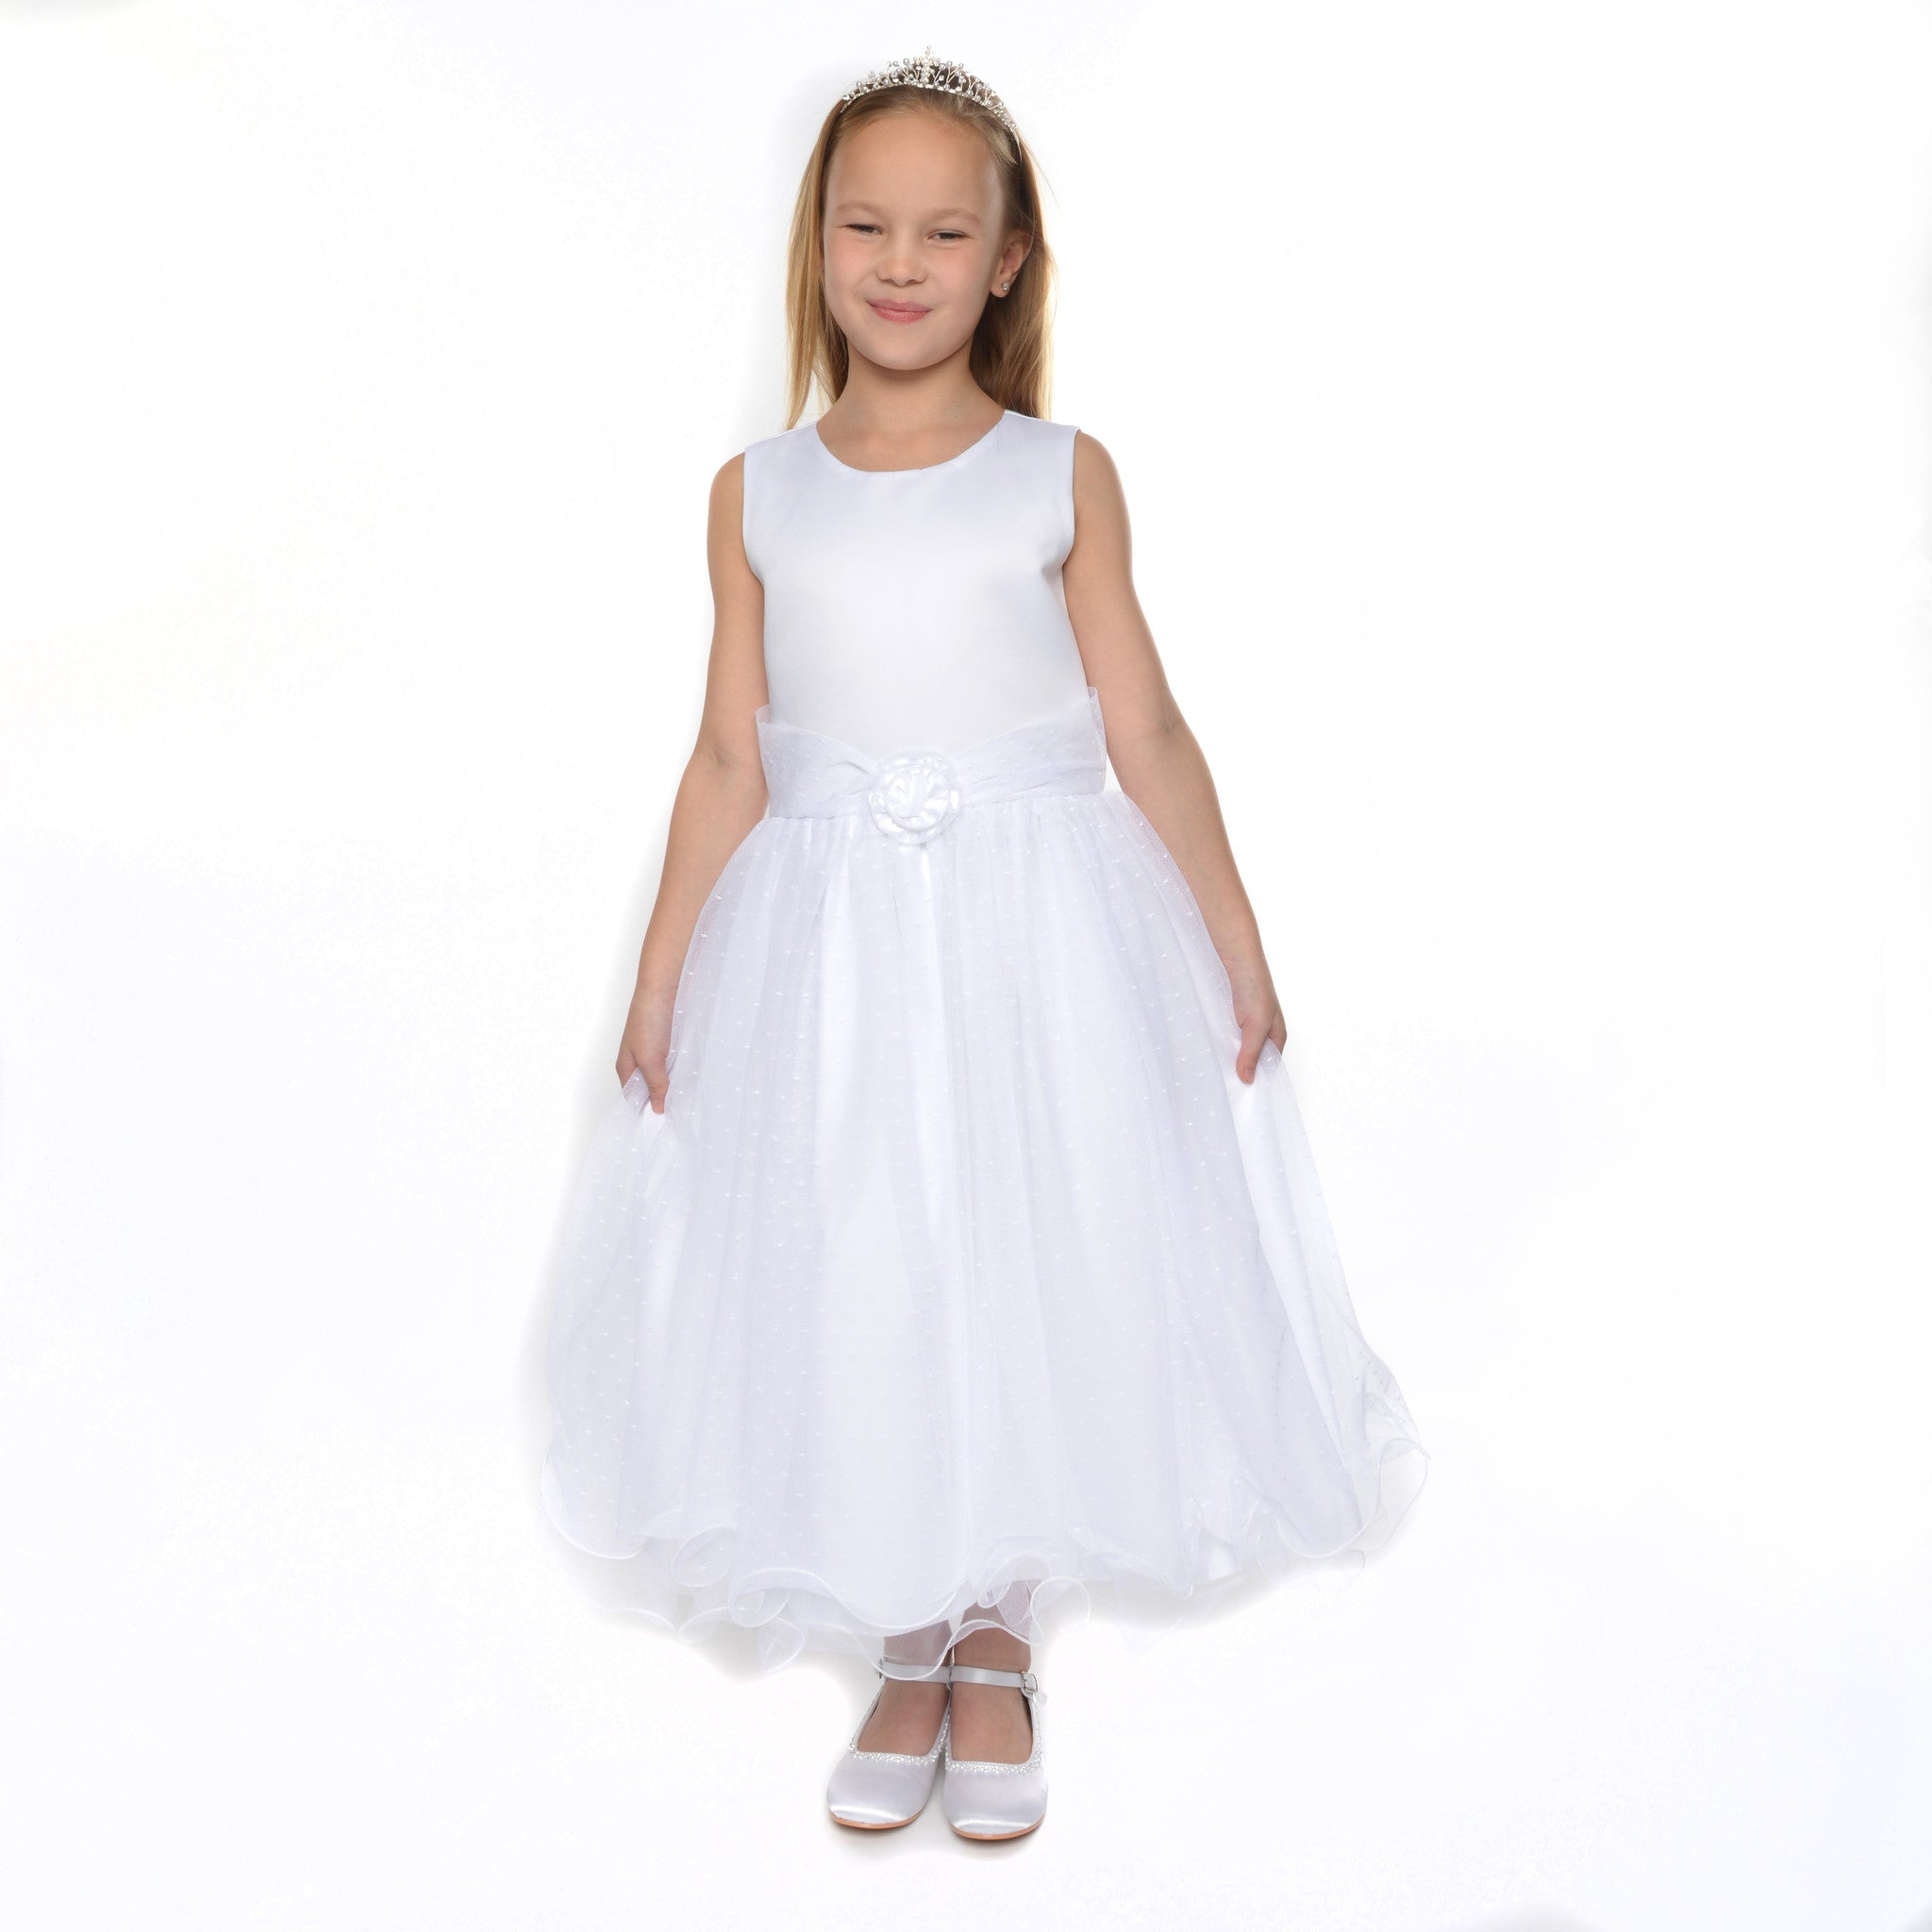 dae3302e4 White Flower Girl Dress & Jacket for babies toddlers and girls Verity